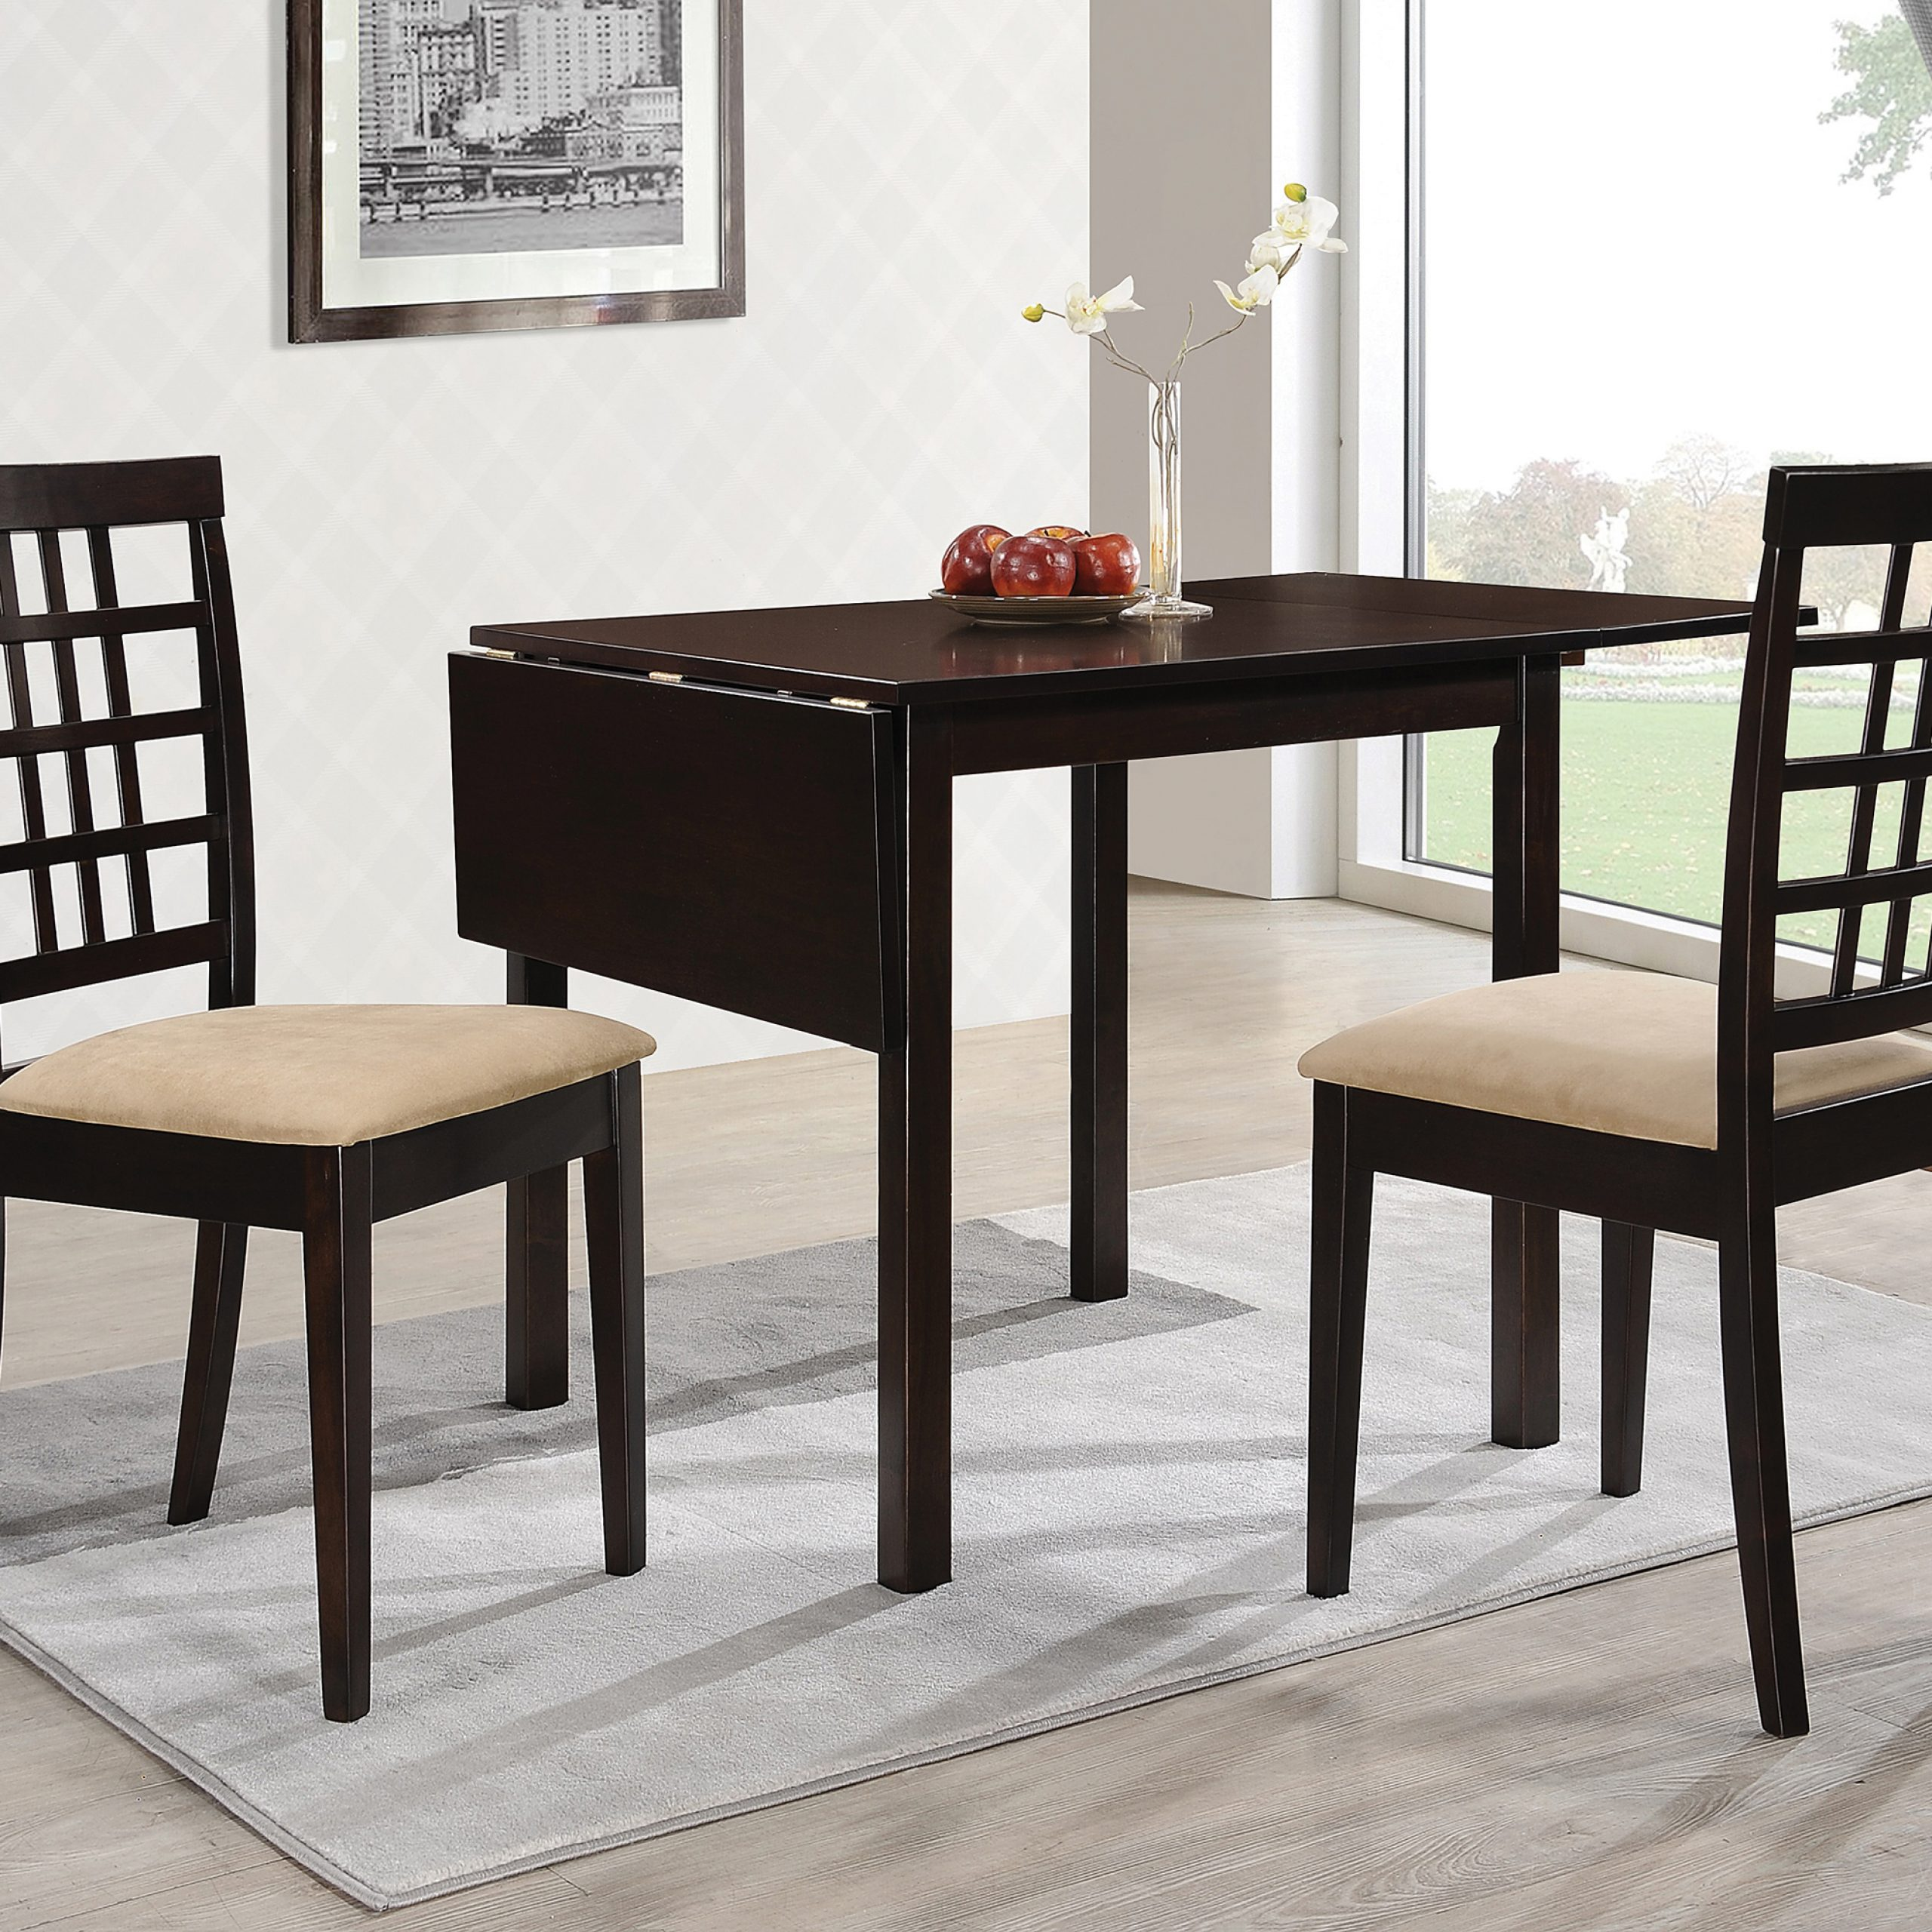 Kelso Rectangular Dining Table With Drop Leaf Cappuccino With Regard To Most Current Cappuccino Finish Wood Classic Casual Dining Tables (View 16 of 30)